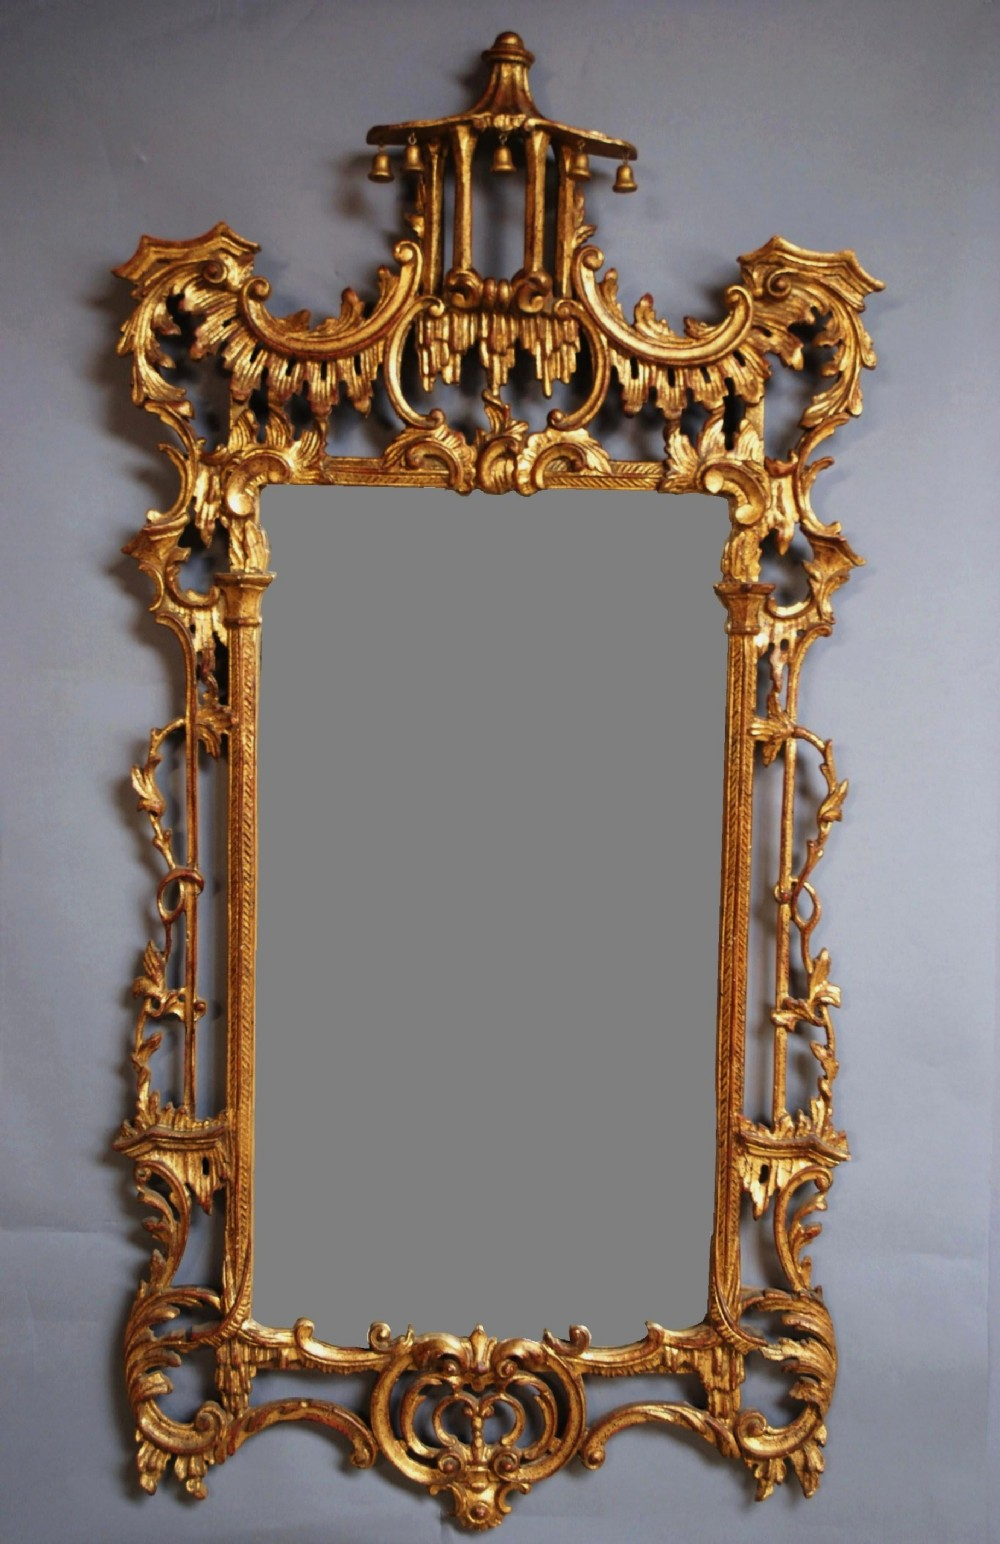 Early 20th c chinese chippendale style mirror 275575 for Asian style mirror